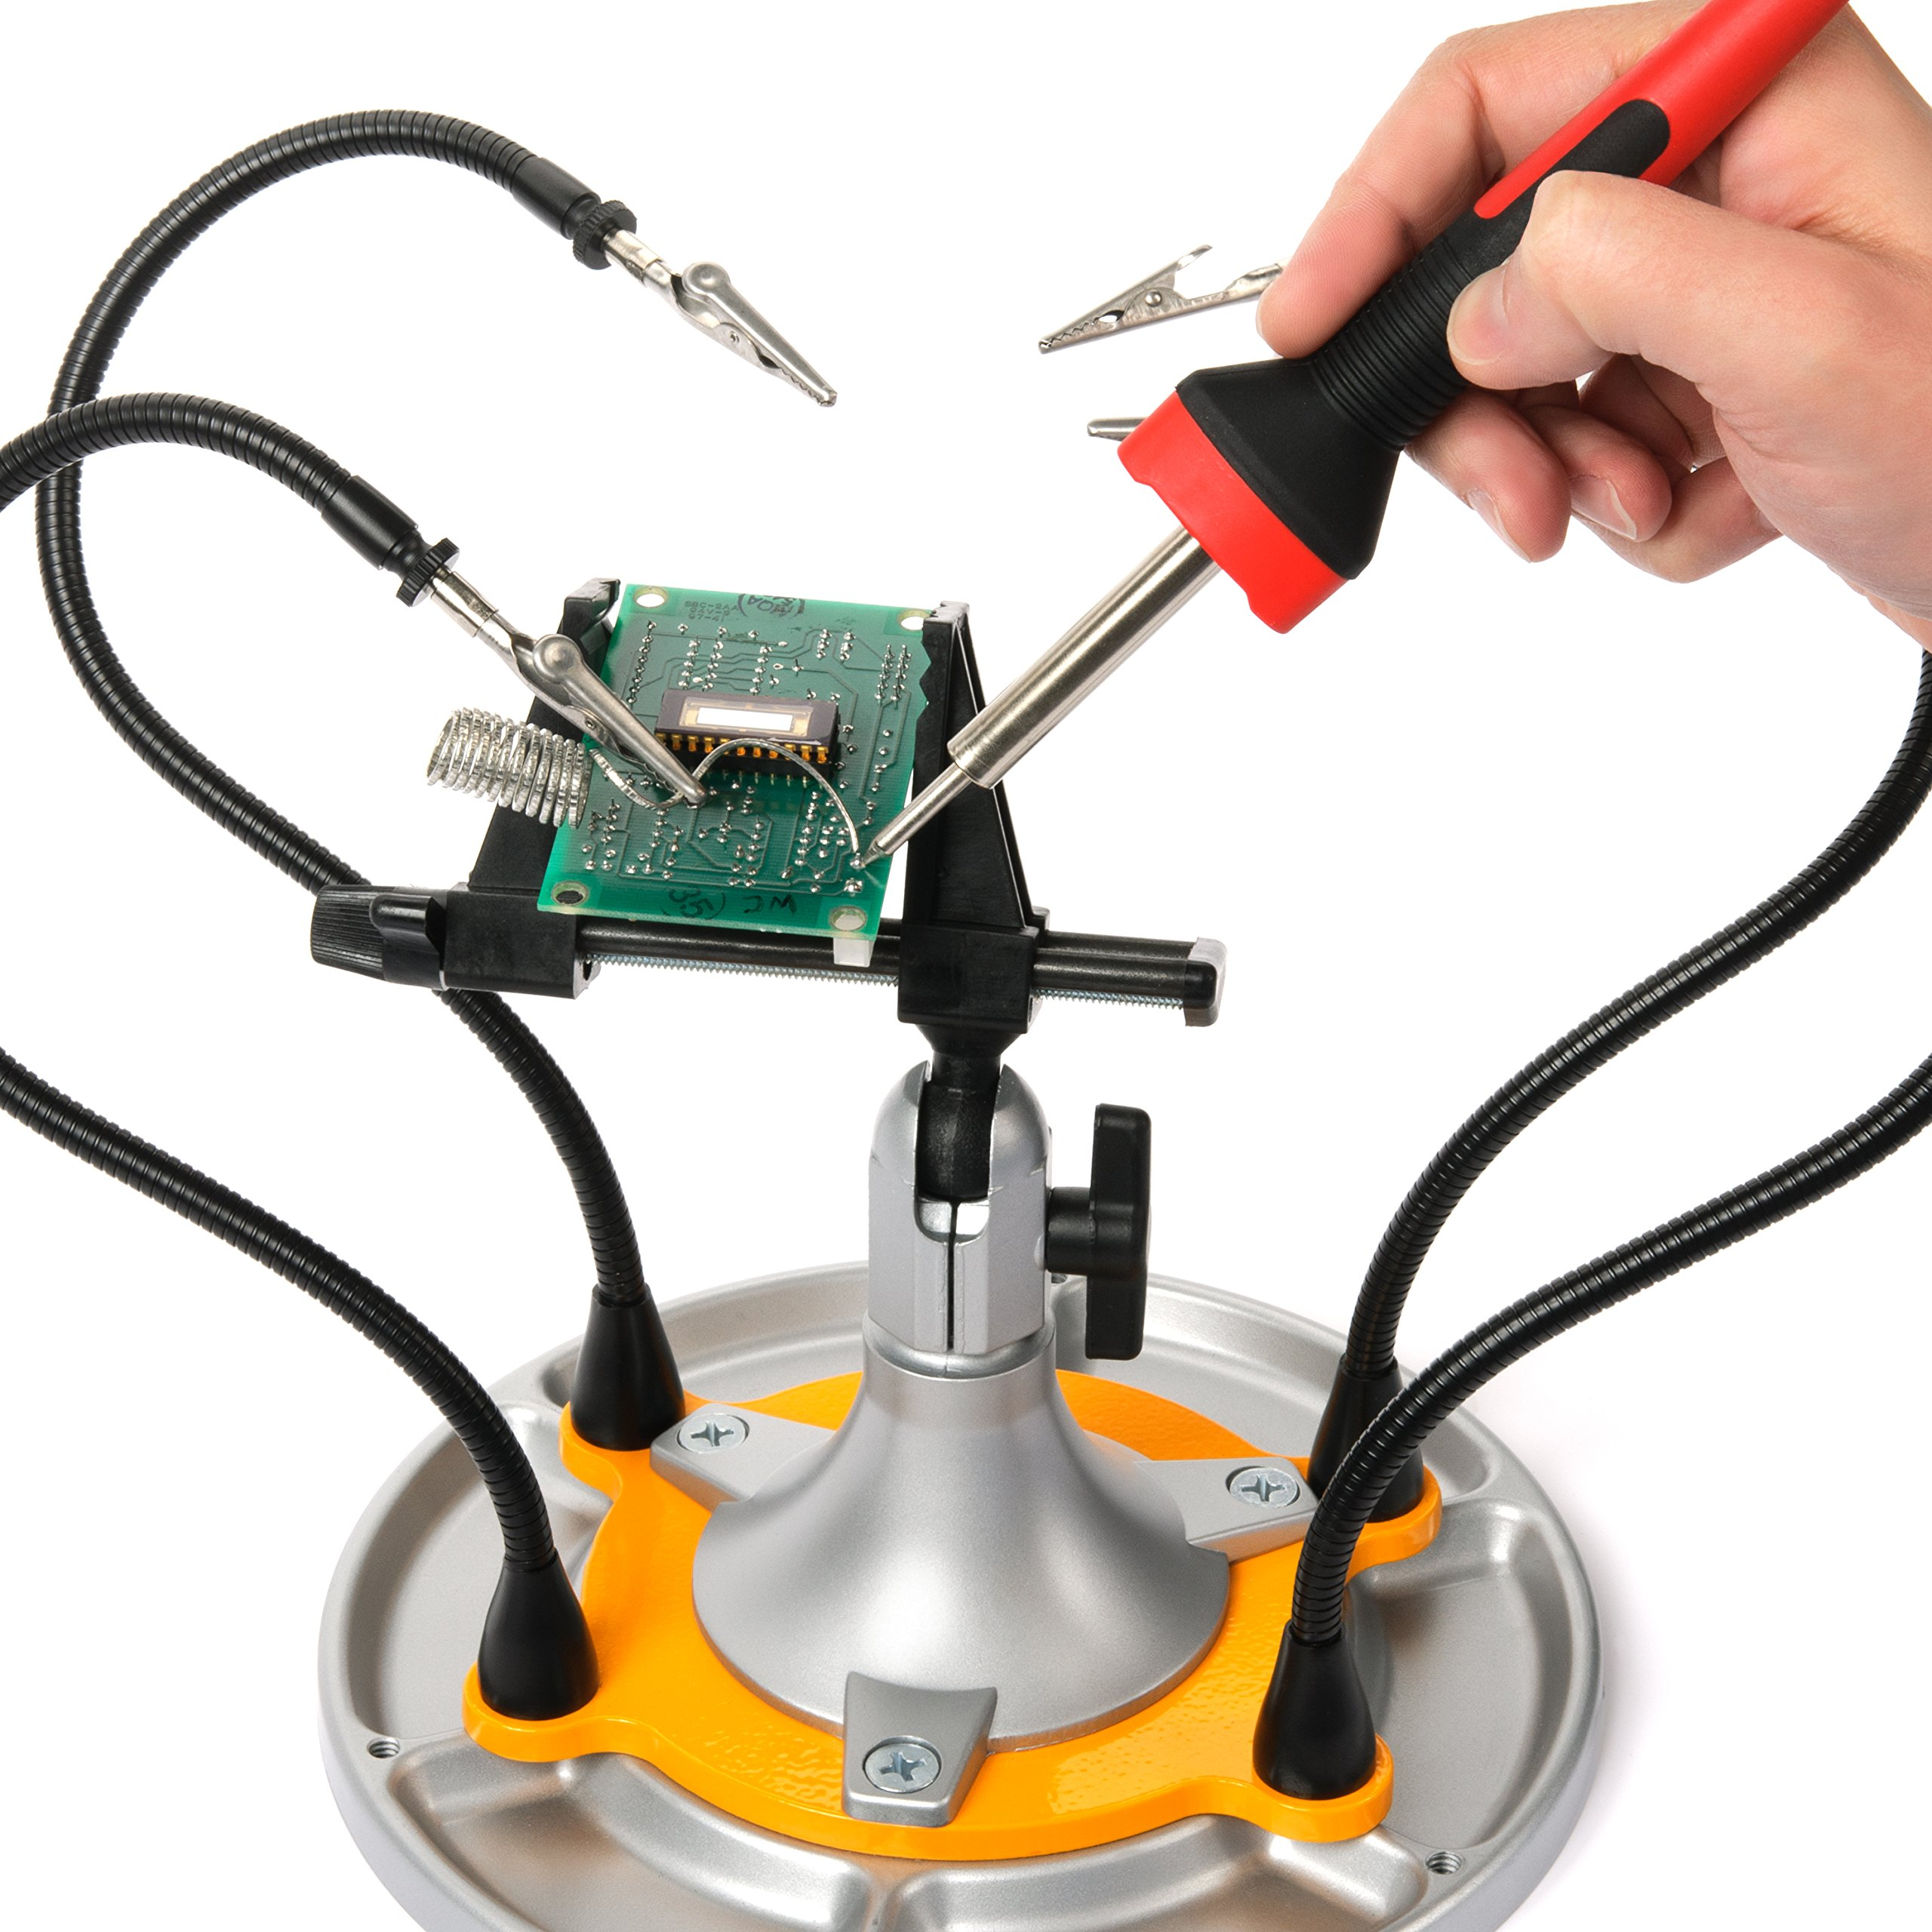 QuadHands Flex Plus - Panavise Third Hand Soldering Tool Add On with Movable & Flexible Steel Gooseneck Arms | 4 Magnetic Arms and Steel Base Plate Integrates Seamlessly with Panavise Work Stations by QuadHands (Image #2)